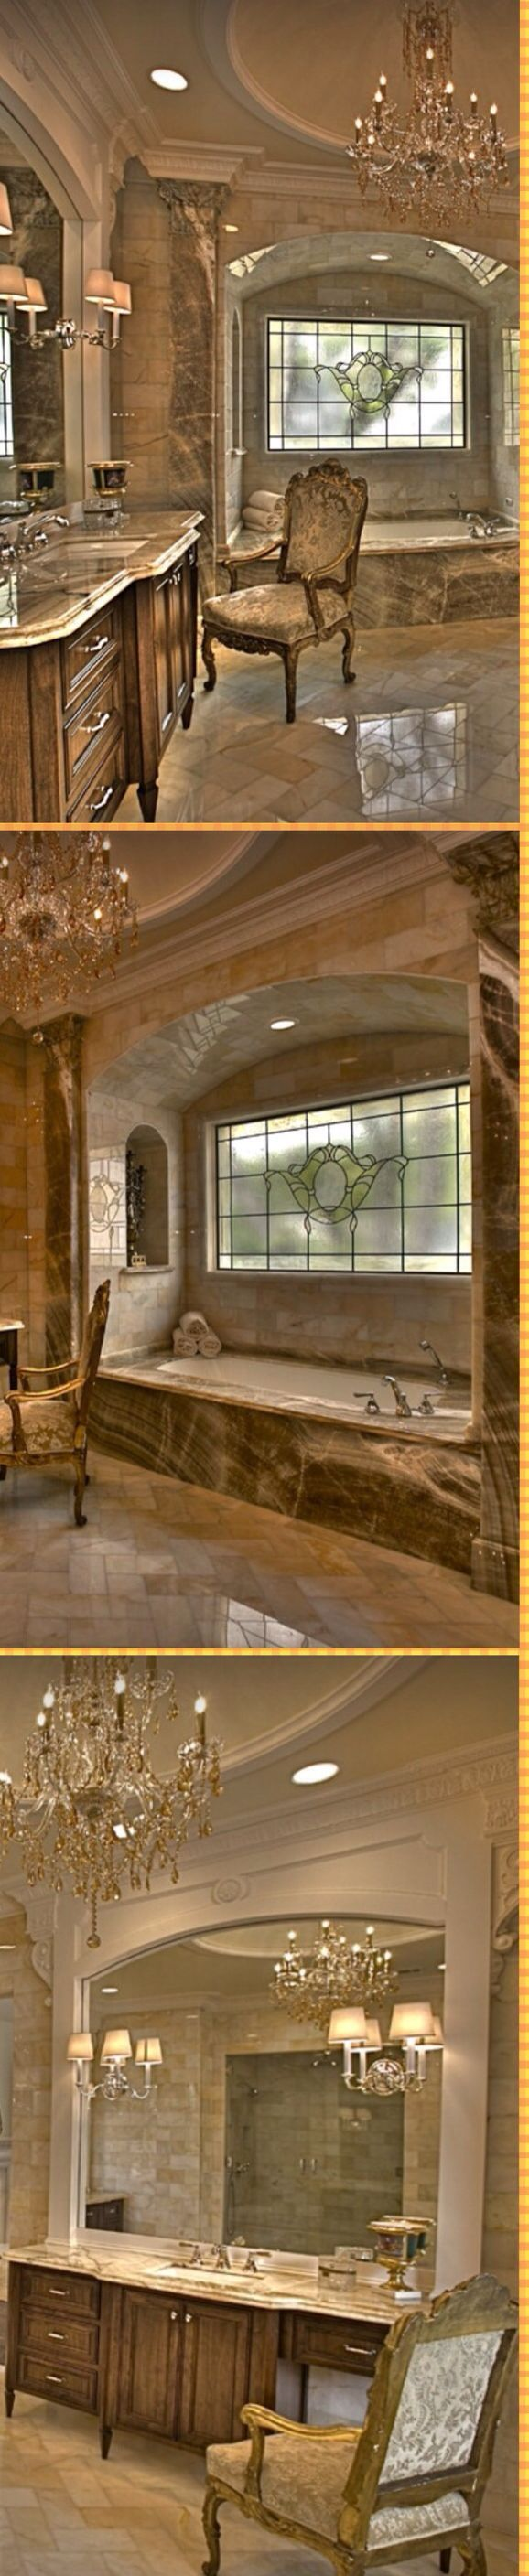 Luxurious Bathrooms Custom Inspiration Design